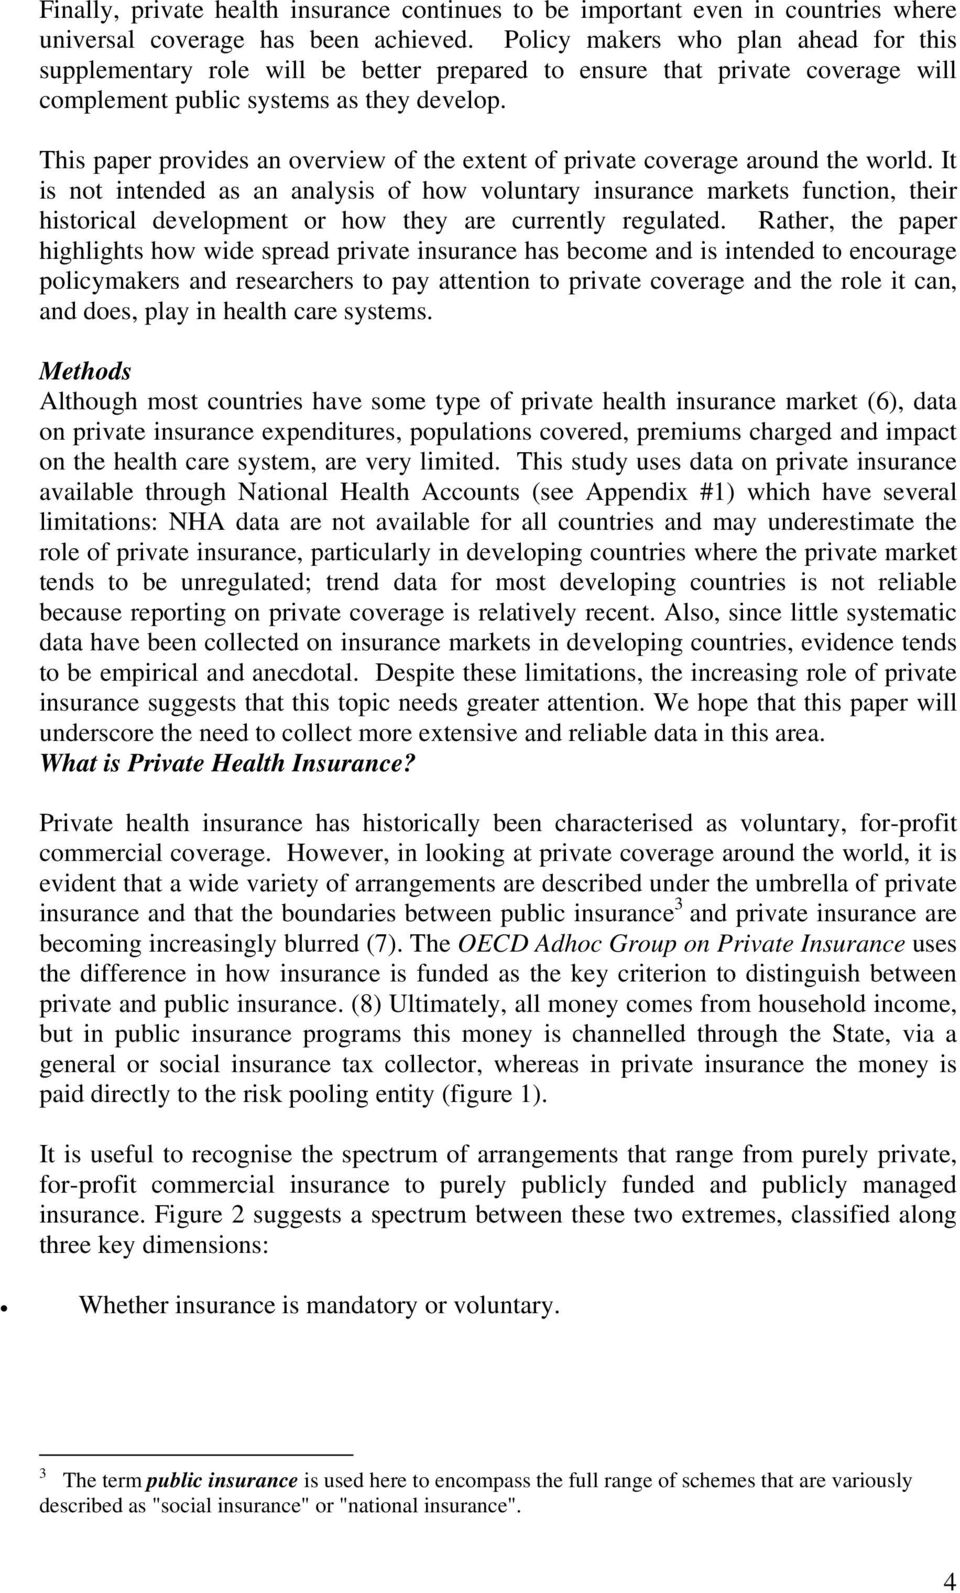 This paper provides an overview of the extent of private coverage around the world.